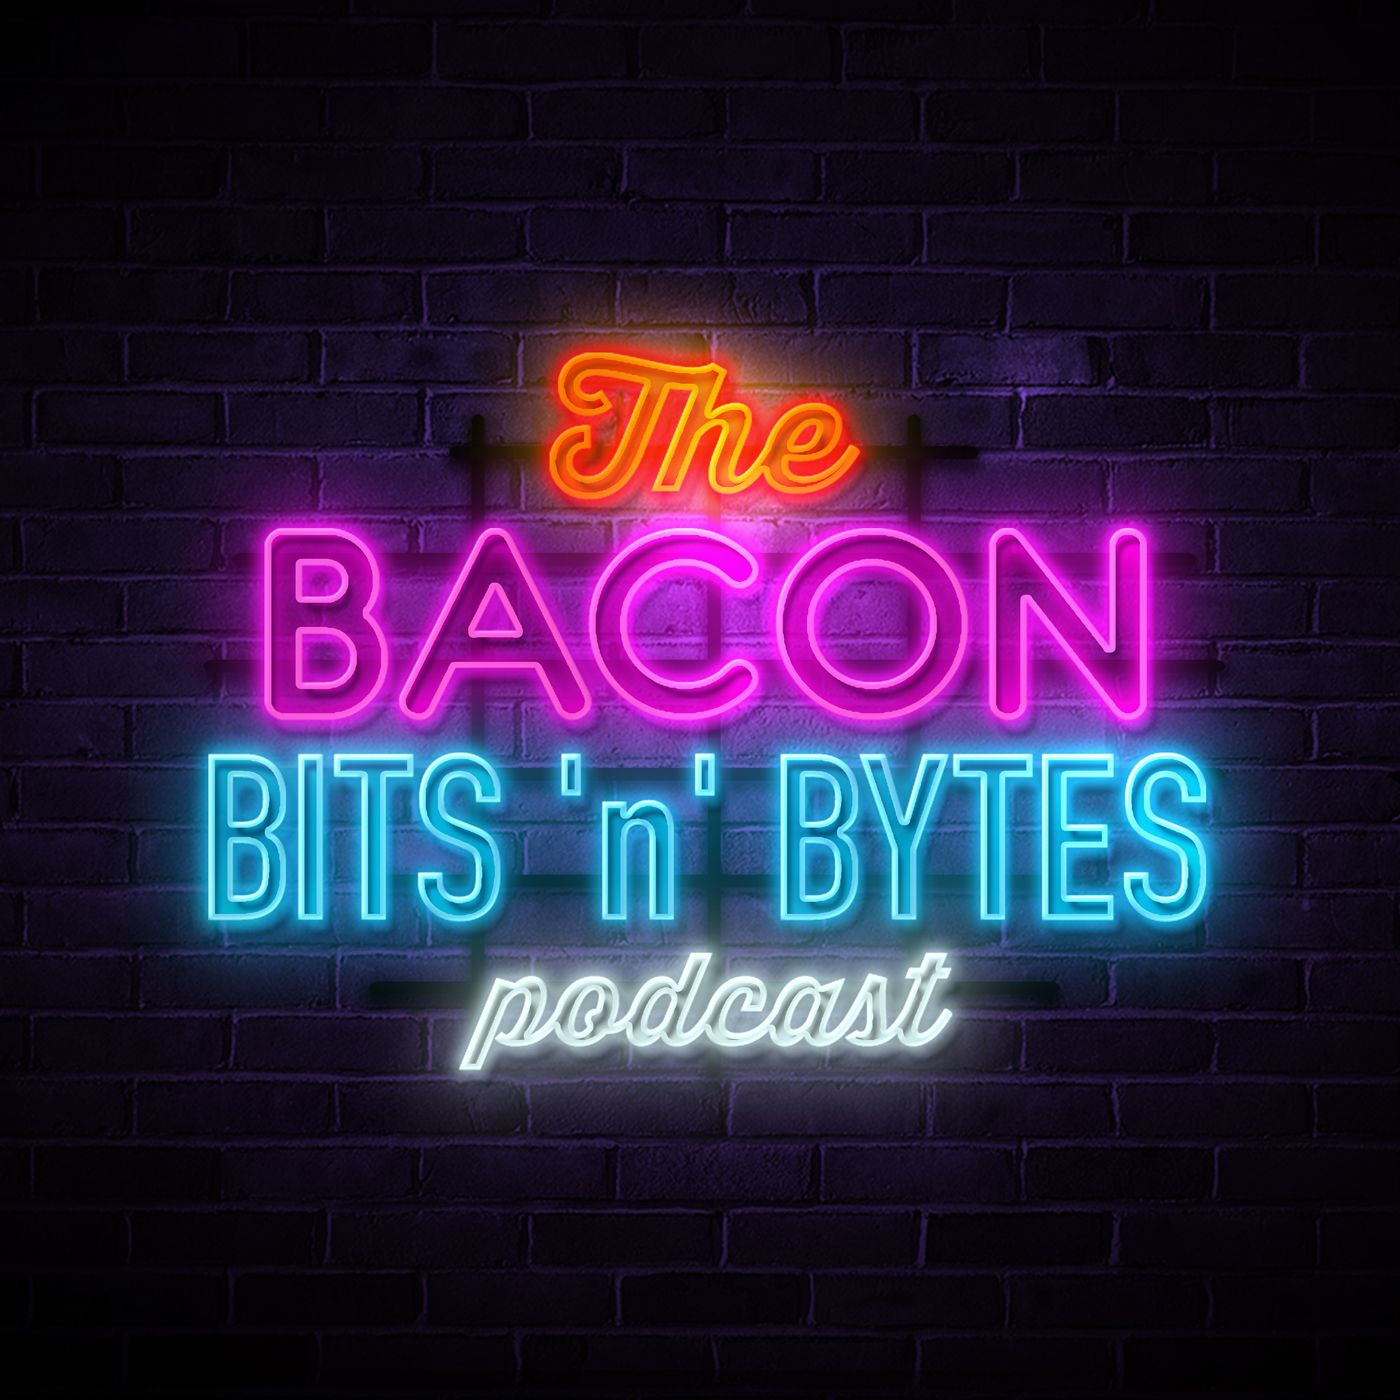 The Bacon Bits 'n' Bytes Podcast:Karen Swyszcz